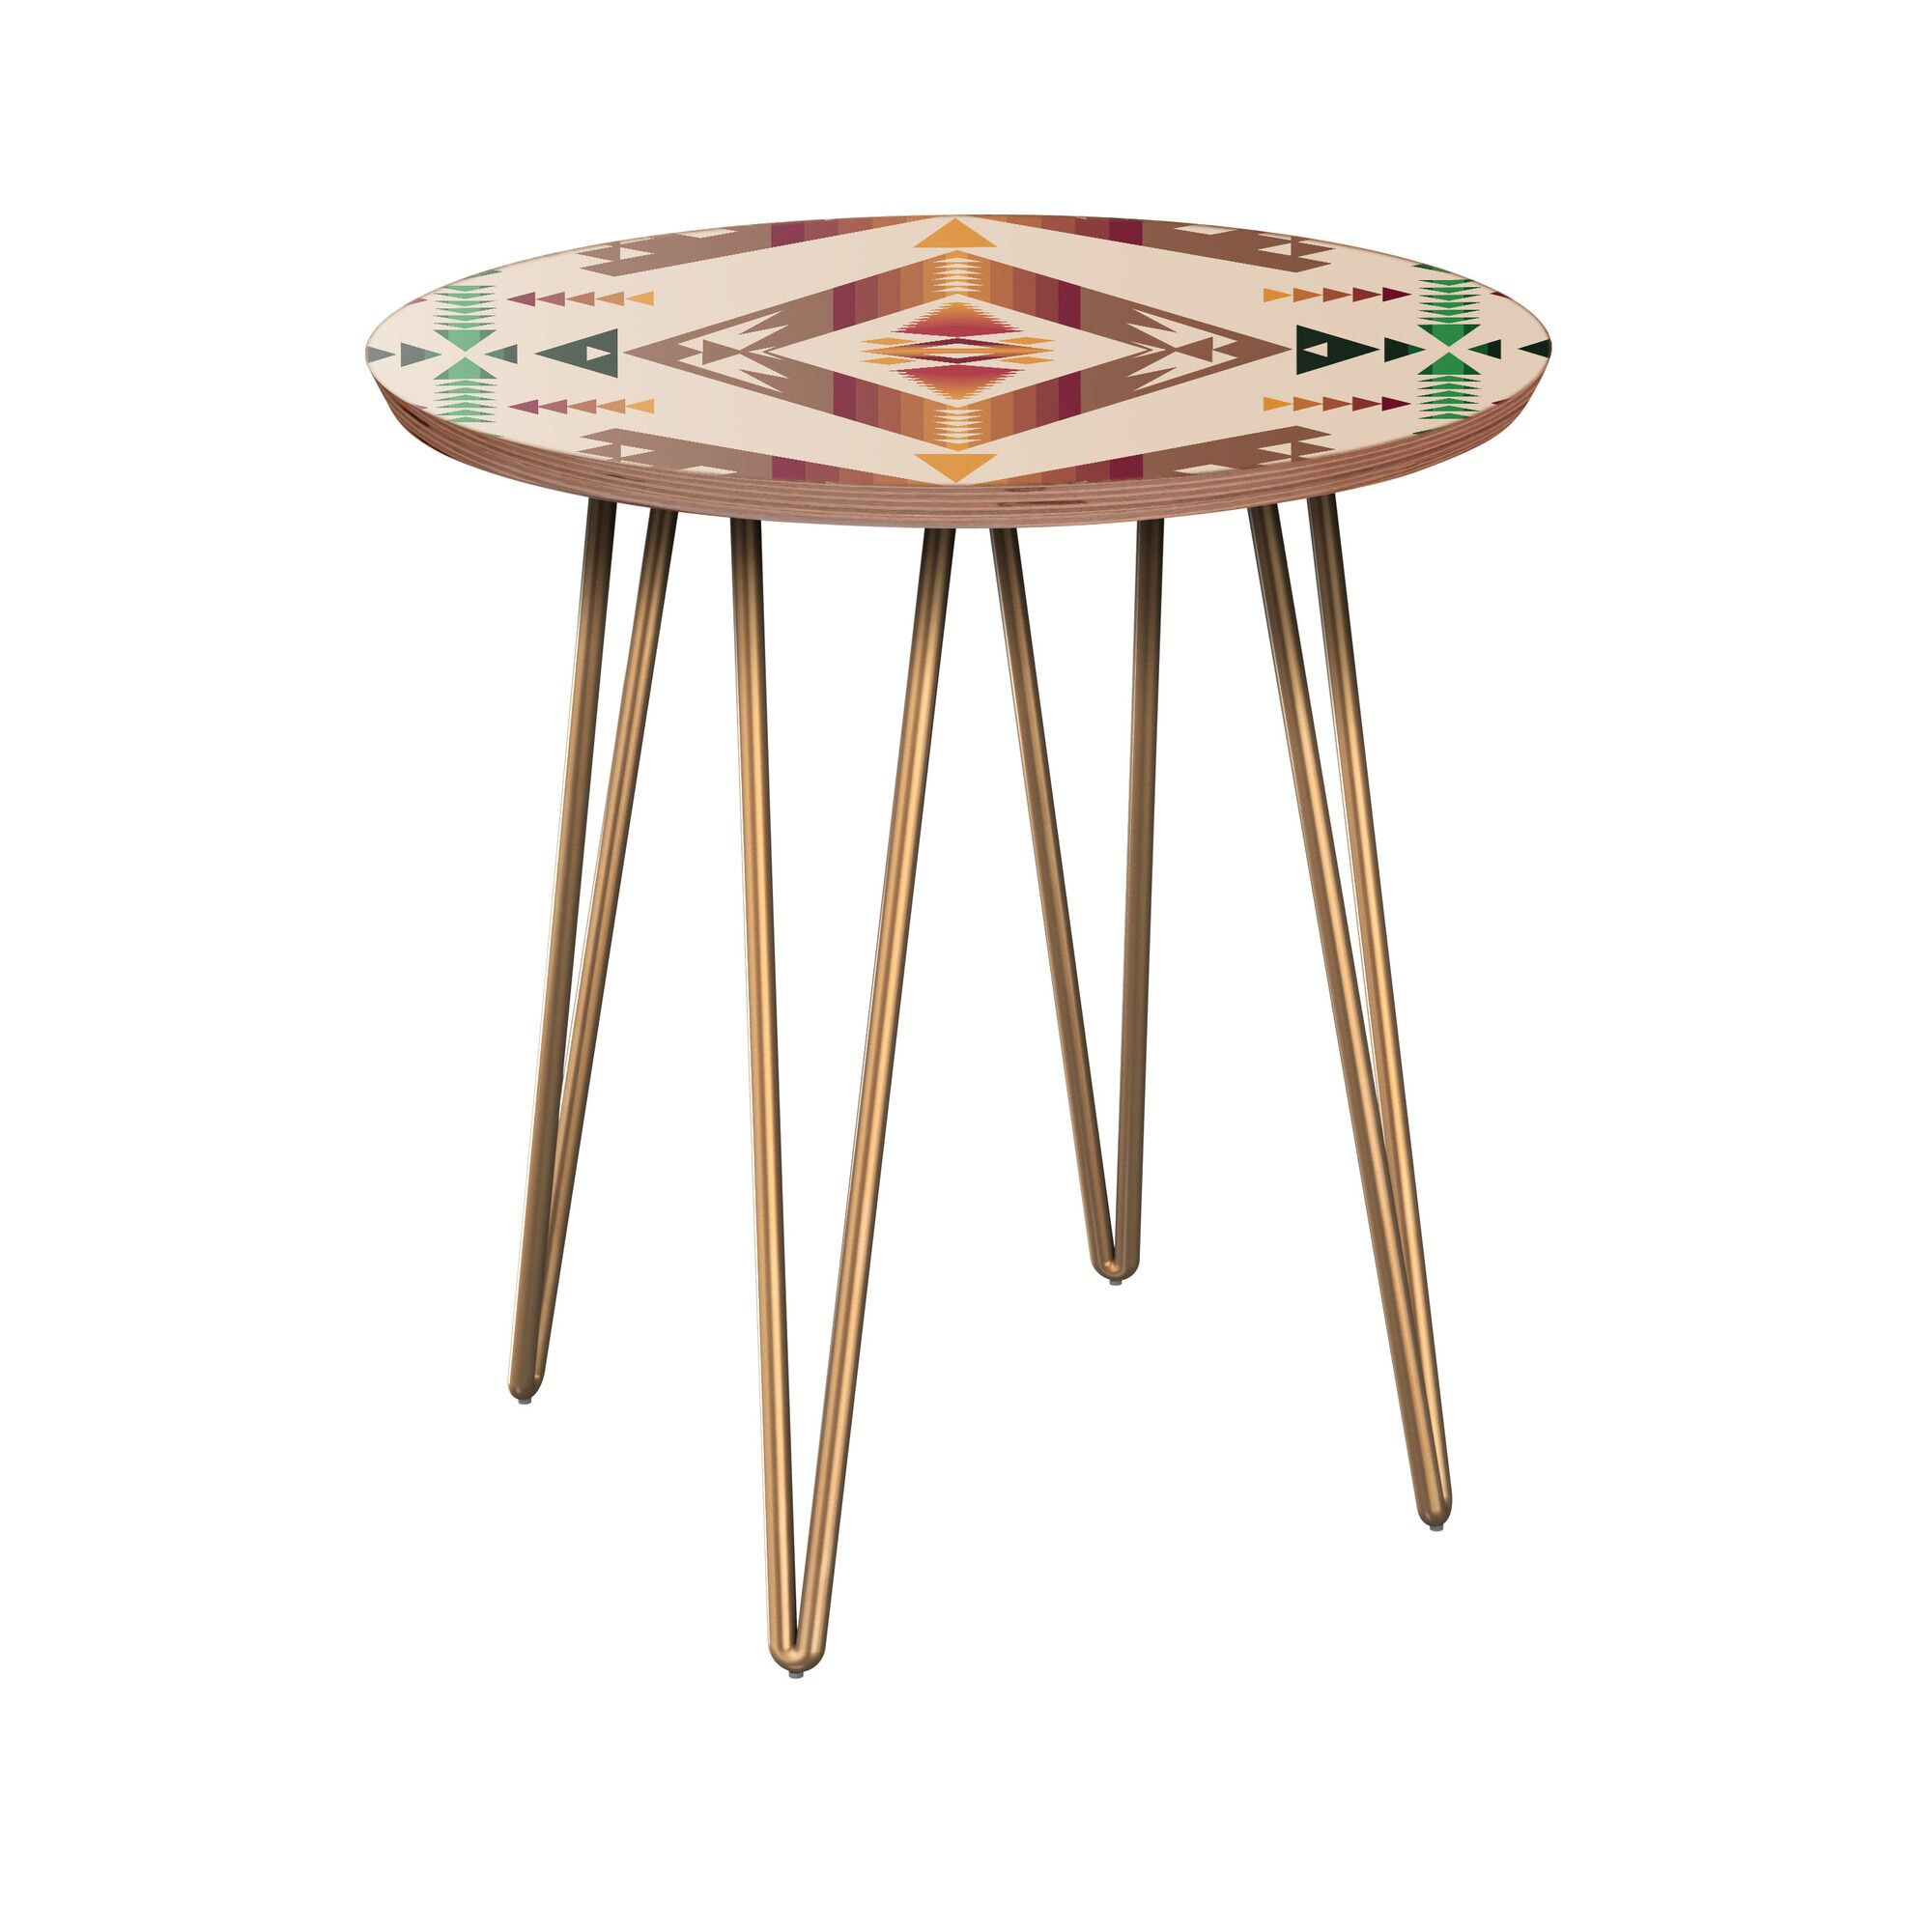 Arana End Table Table Base Color: Brass, Table Top Color: Walnut